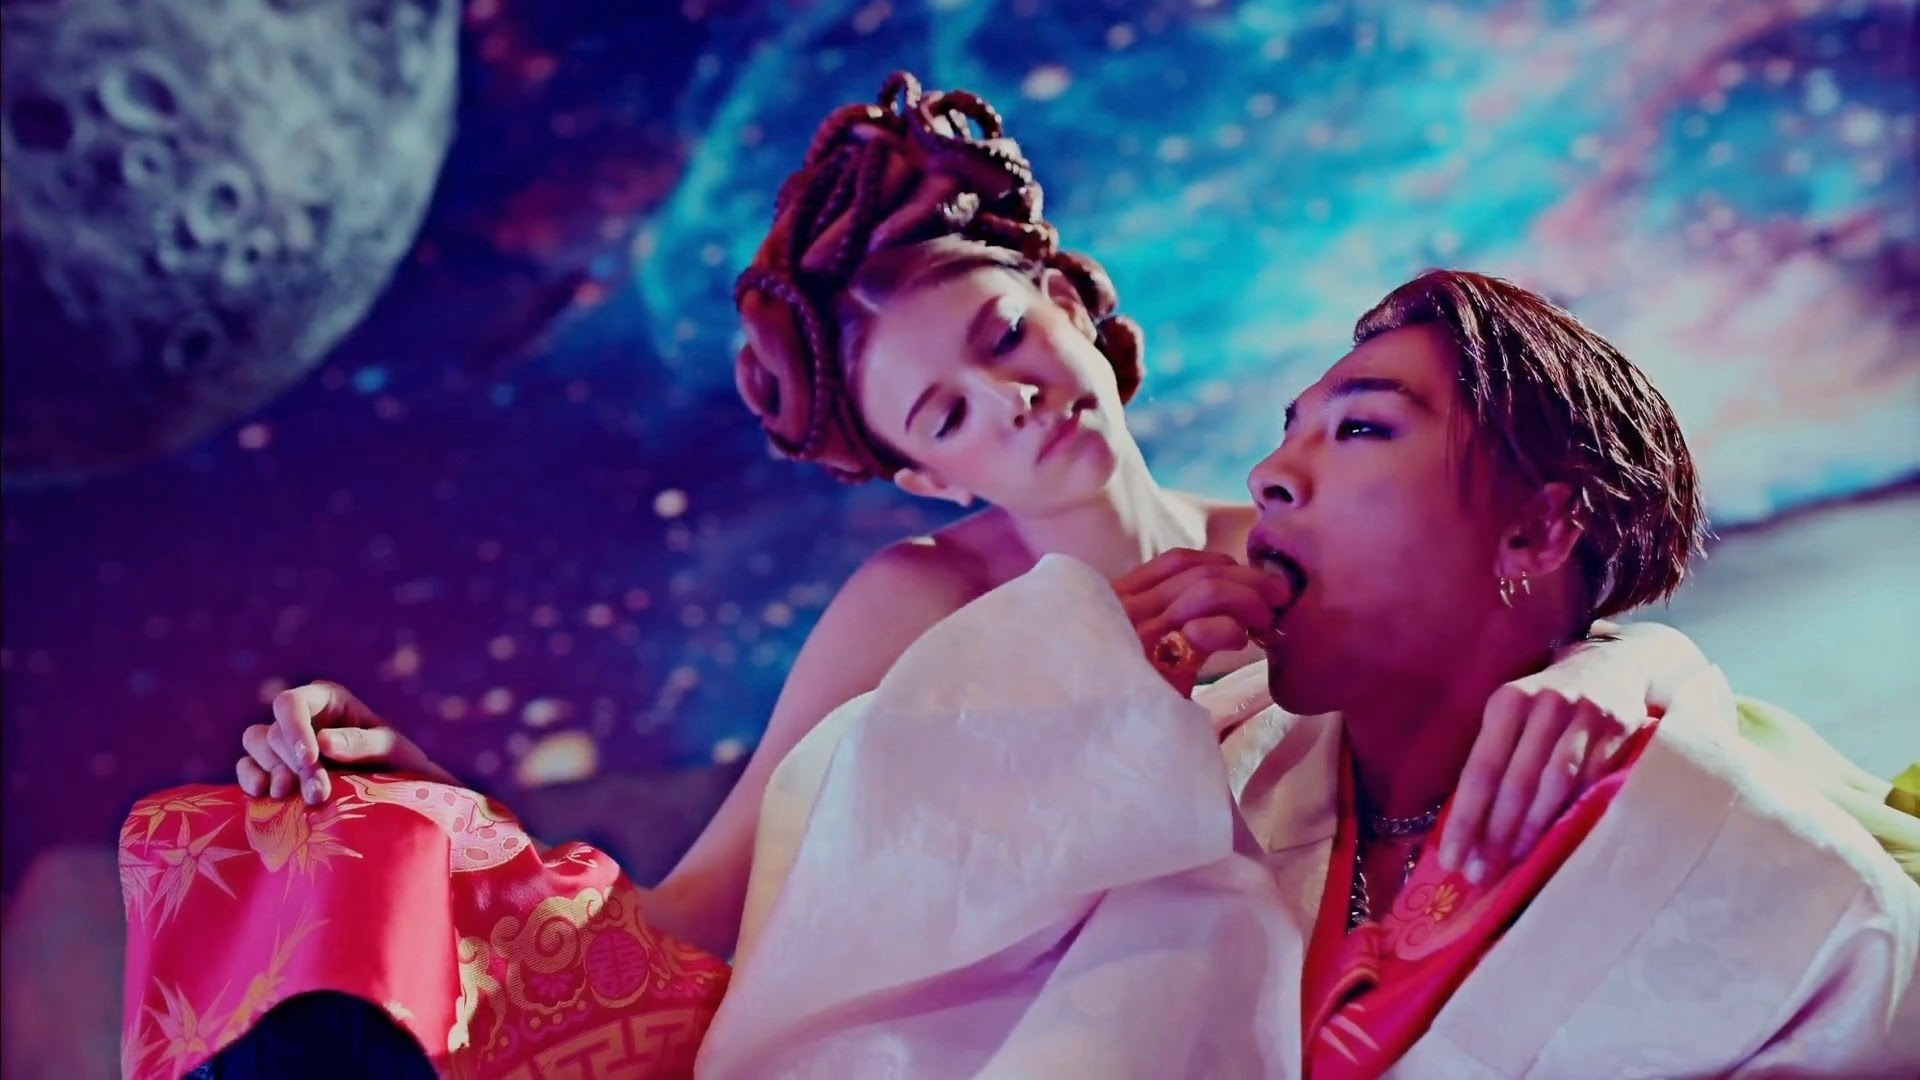 Big Bang's Taeyang in Bae Bae MV